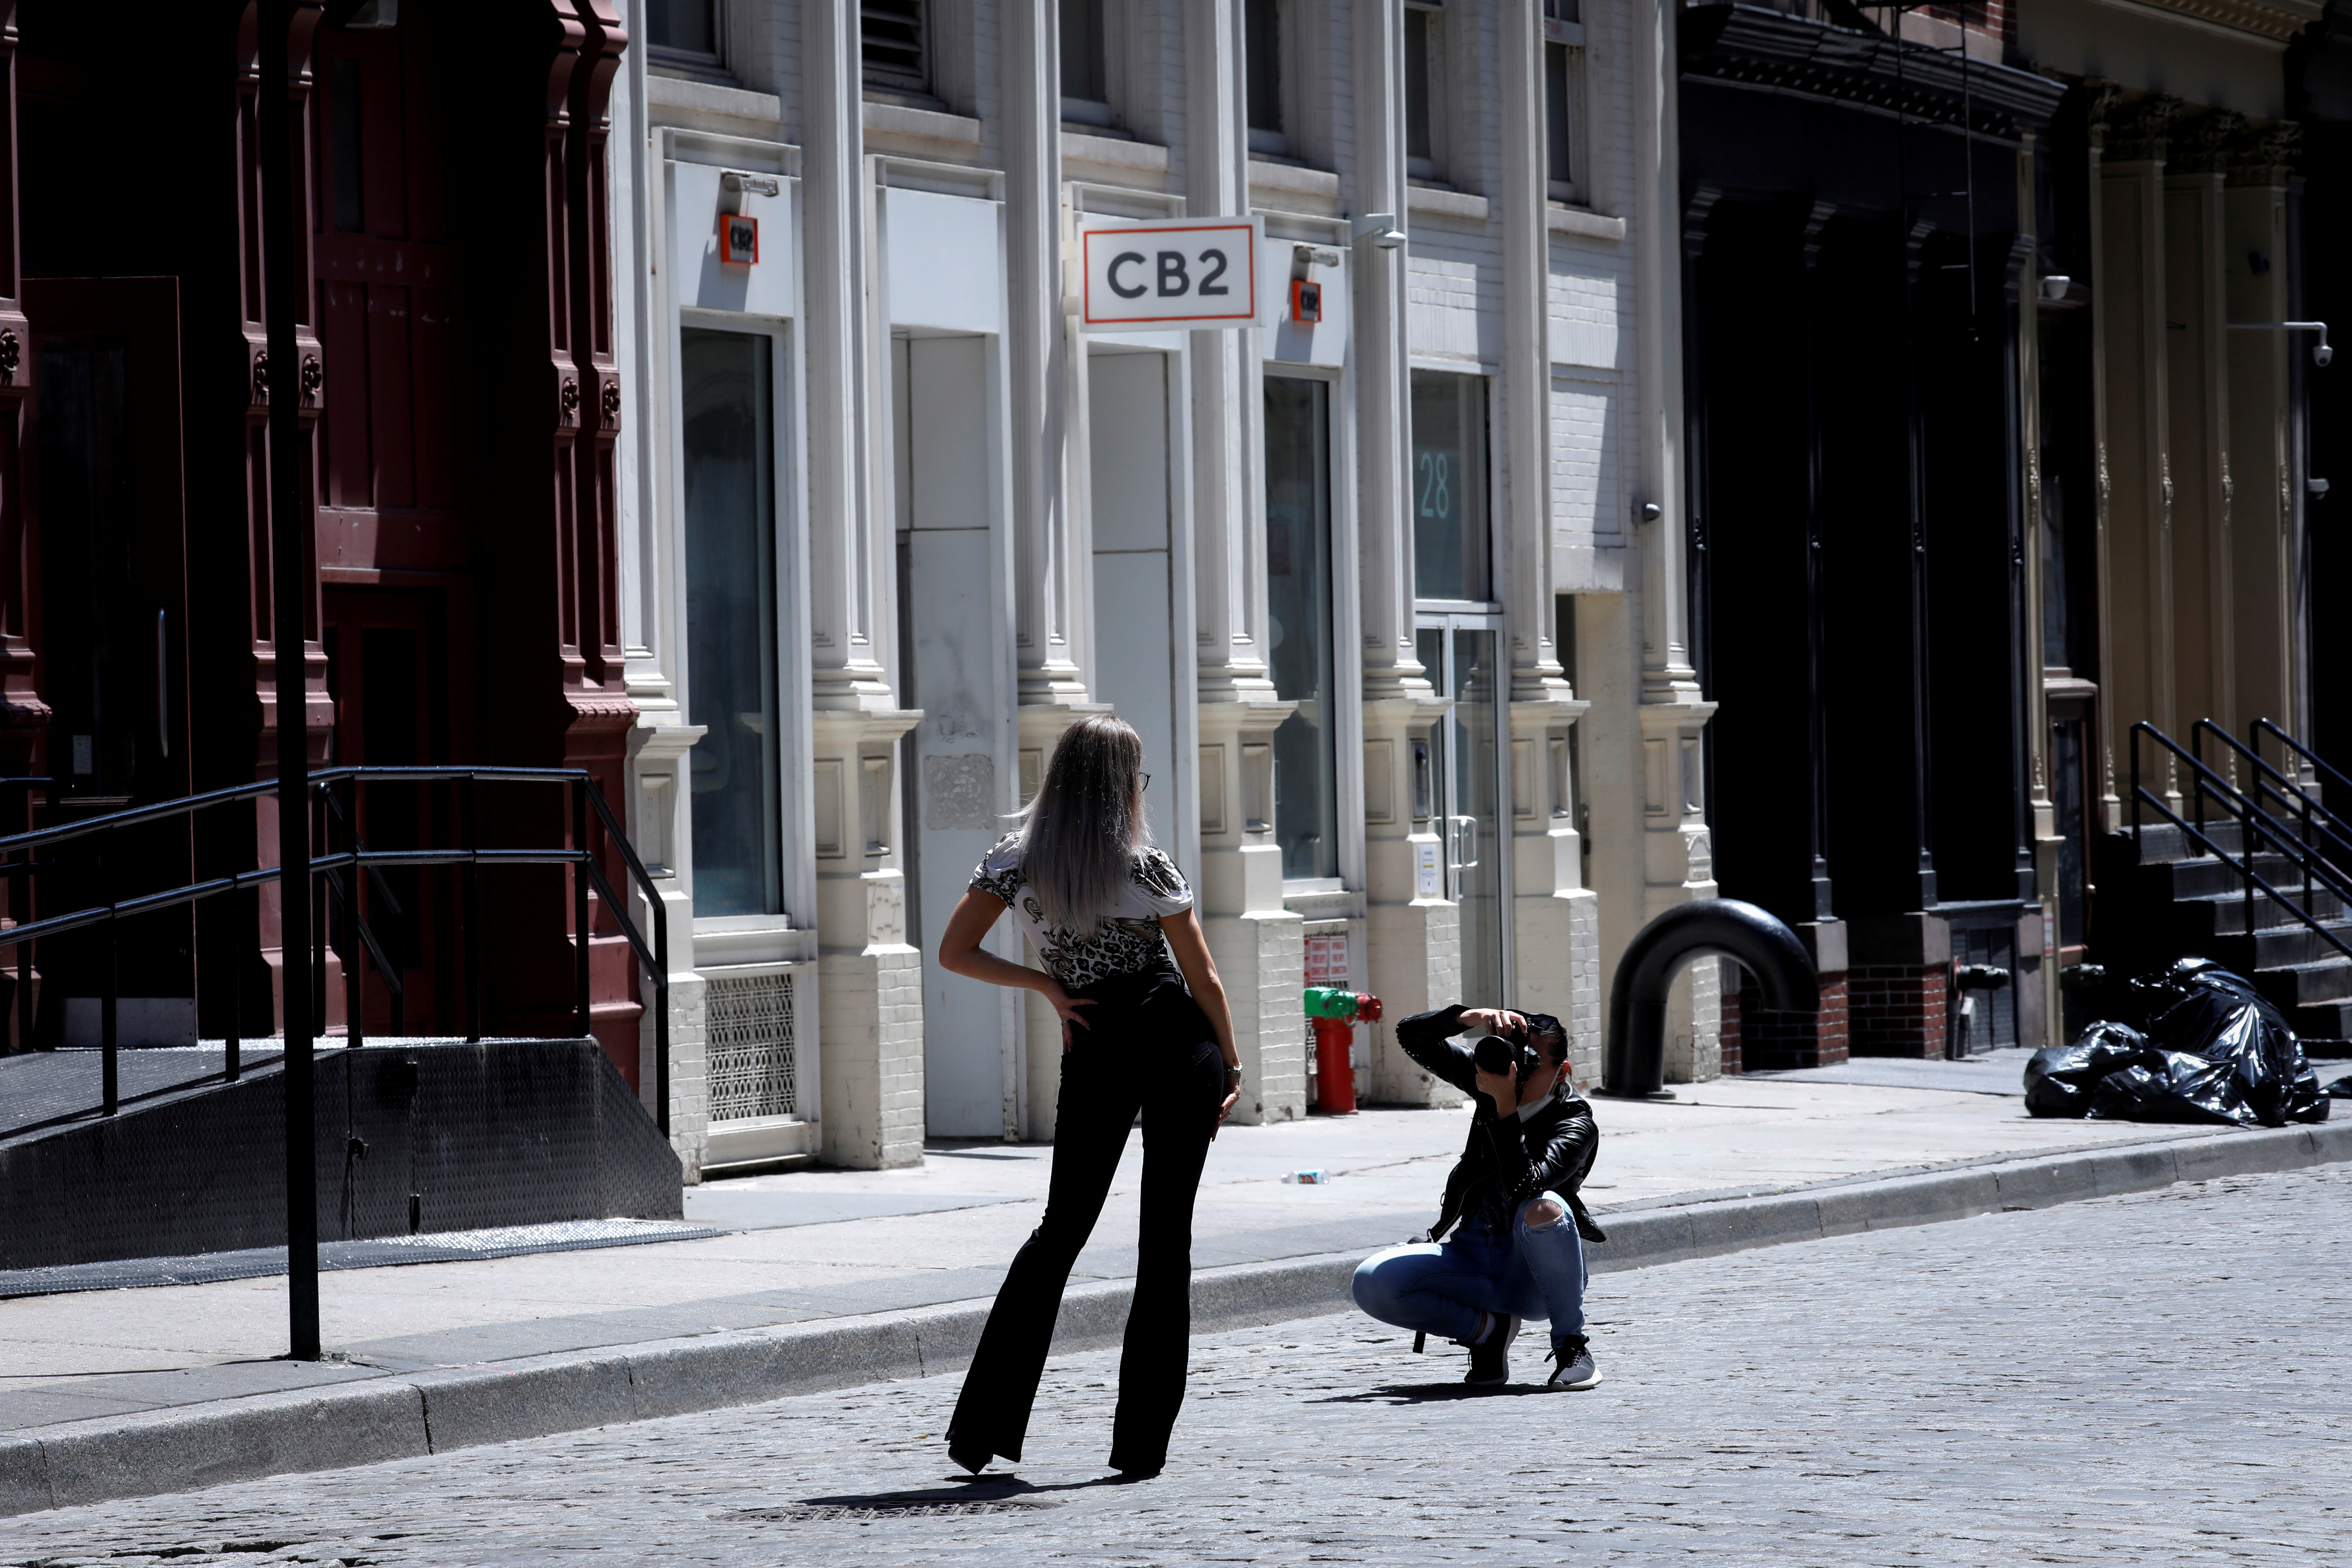 A model poses for a photographer on an empty street in front of closed shops in Soho in Manhattan during the outbreak of the coronavirus disease (COVID-19) in New York City, New York, U.S., May 26, 2020. REUTERS/Mike Segar